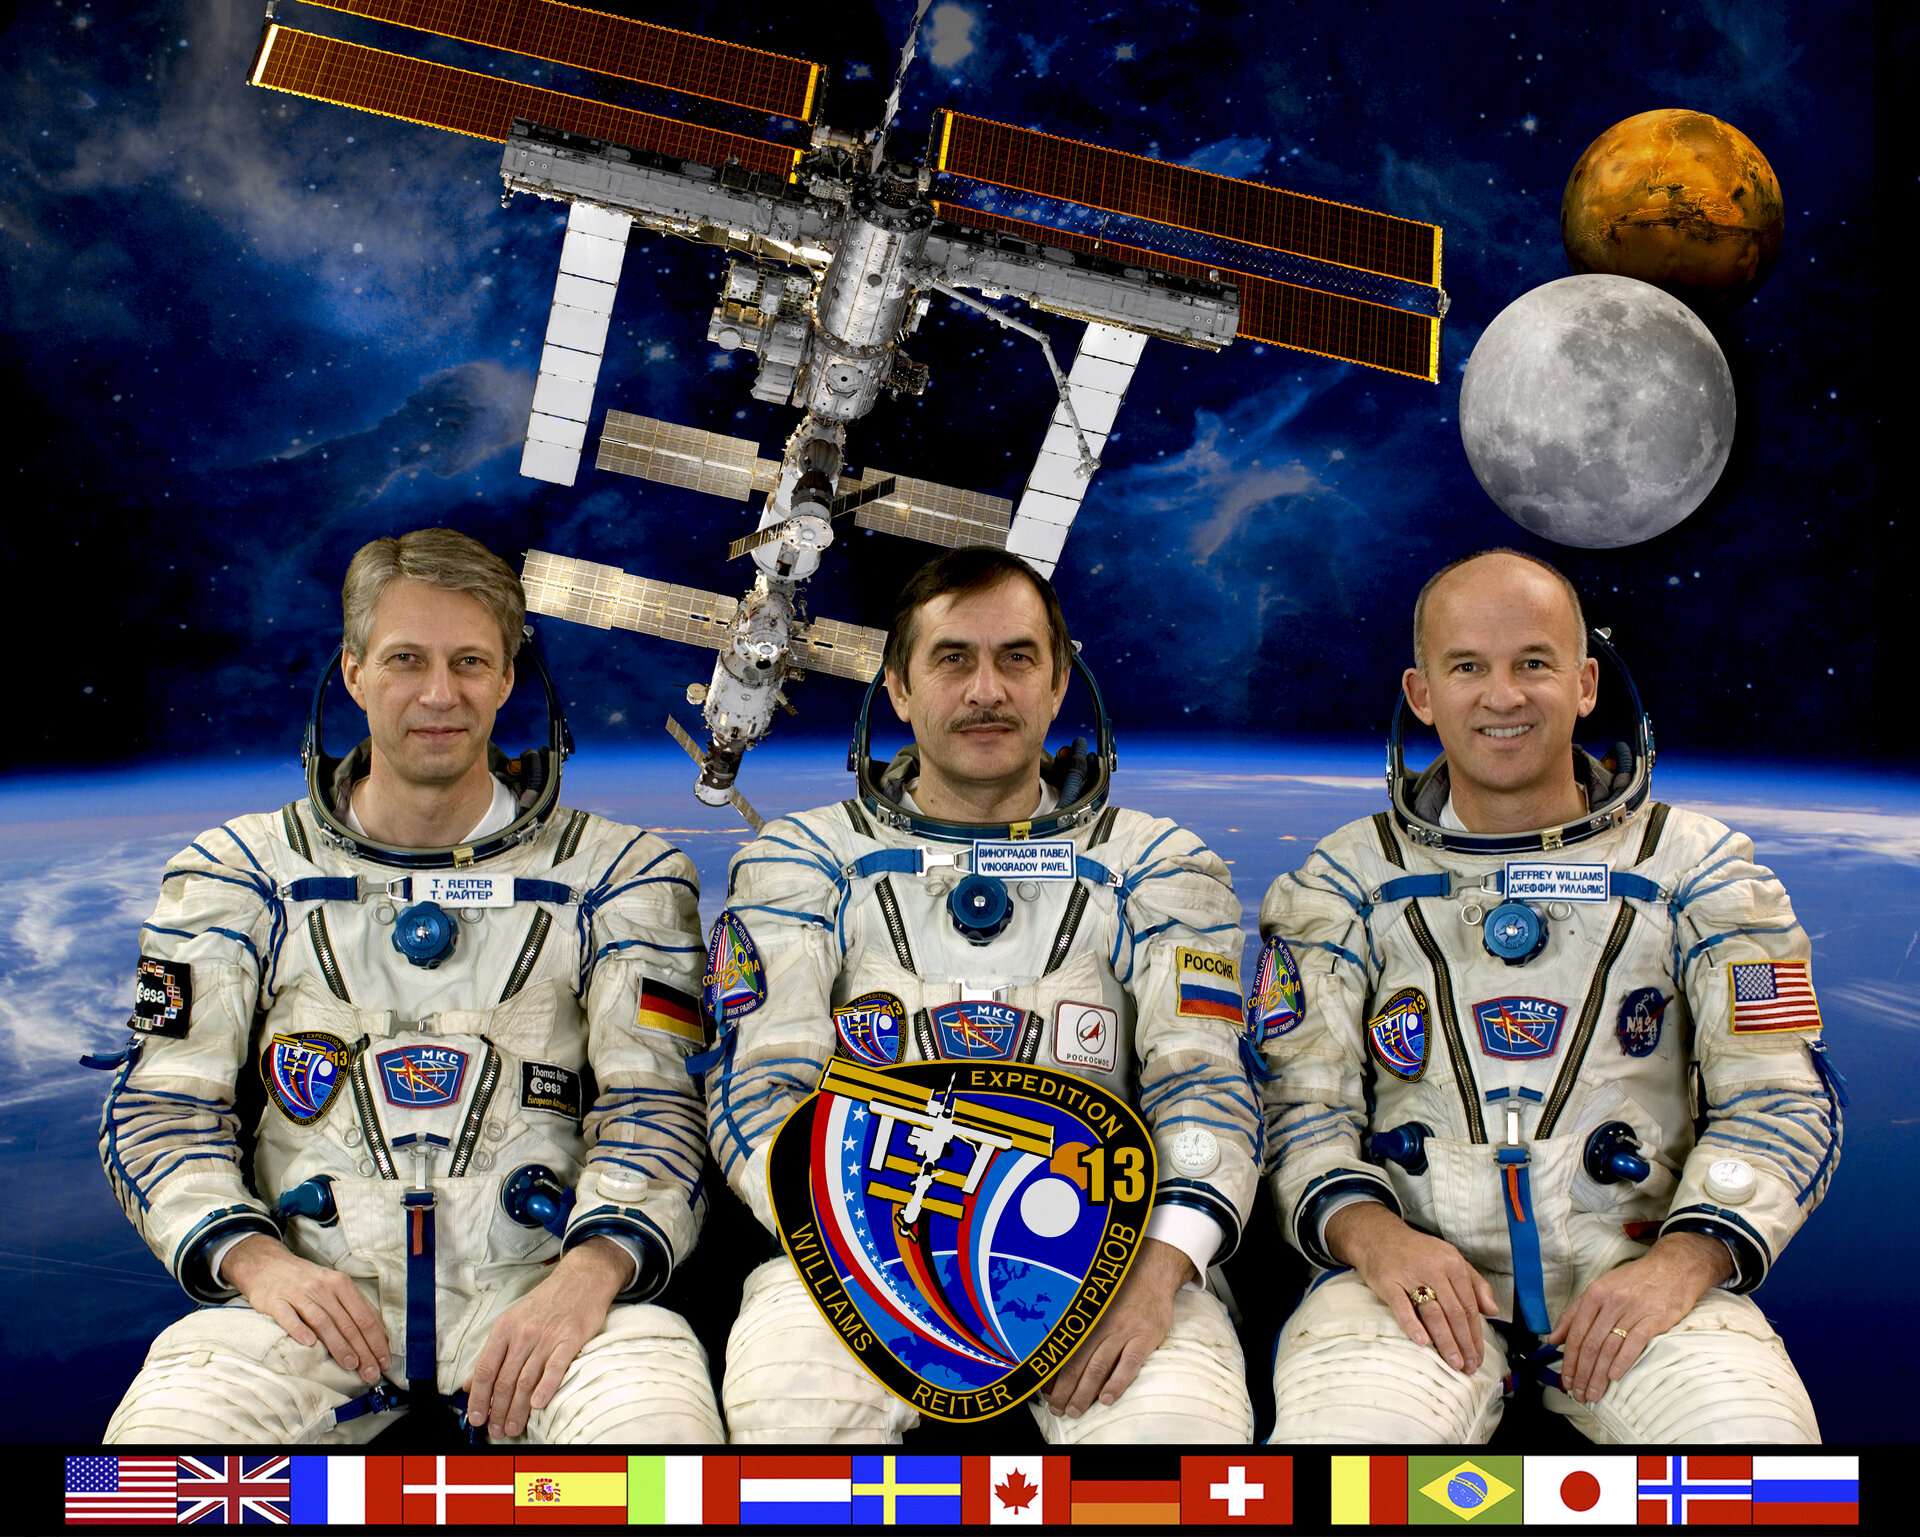 Expedition 13 crew